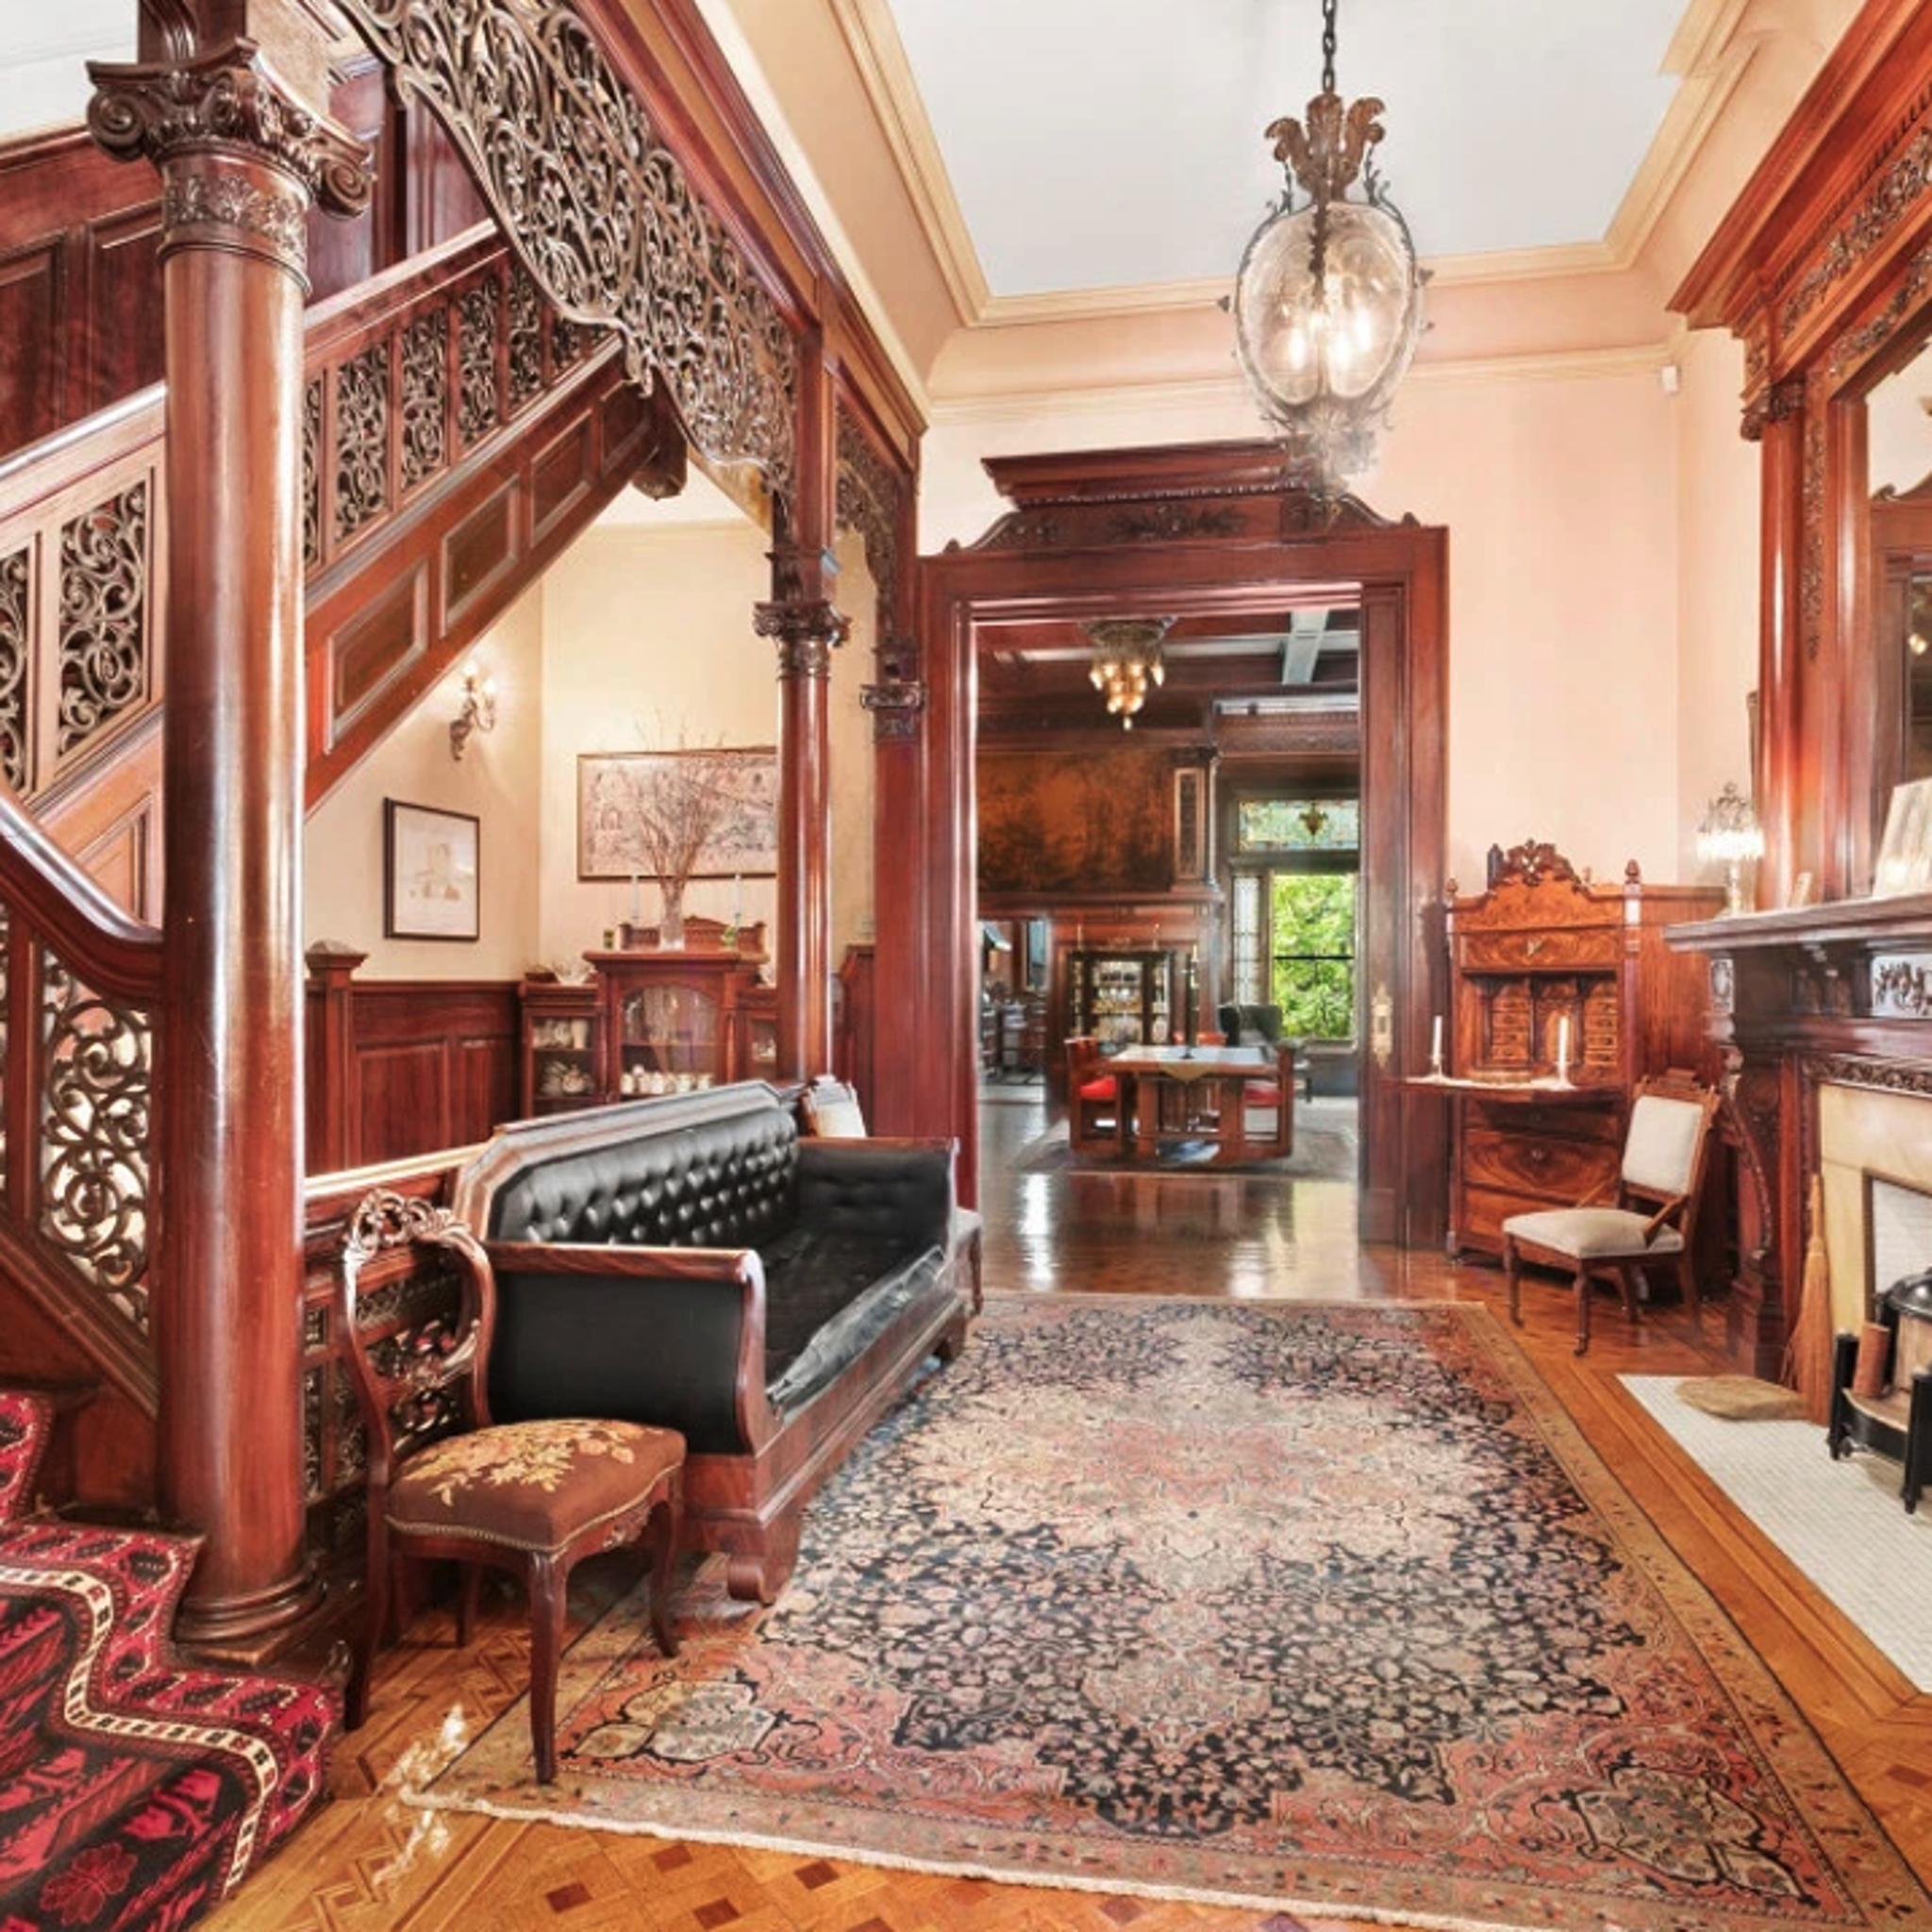 'Boardwalk Empire' House Back on Market After $1.3 Mil Price Cut